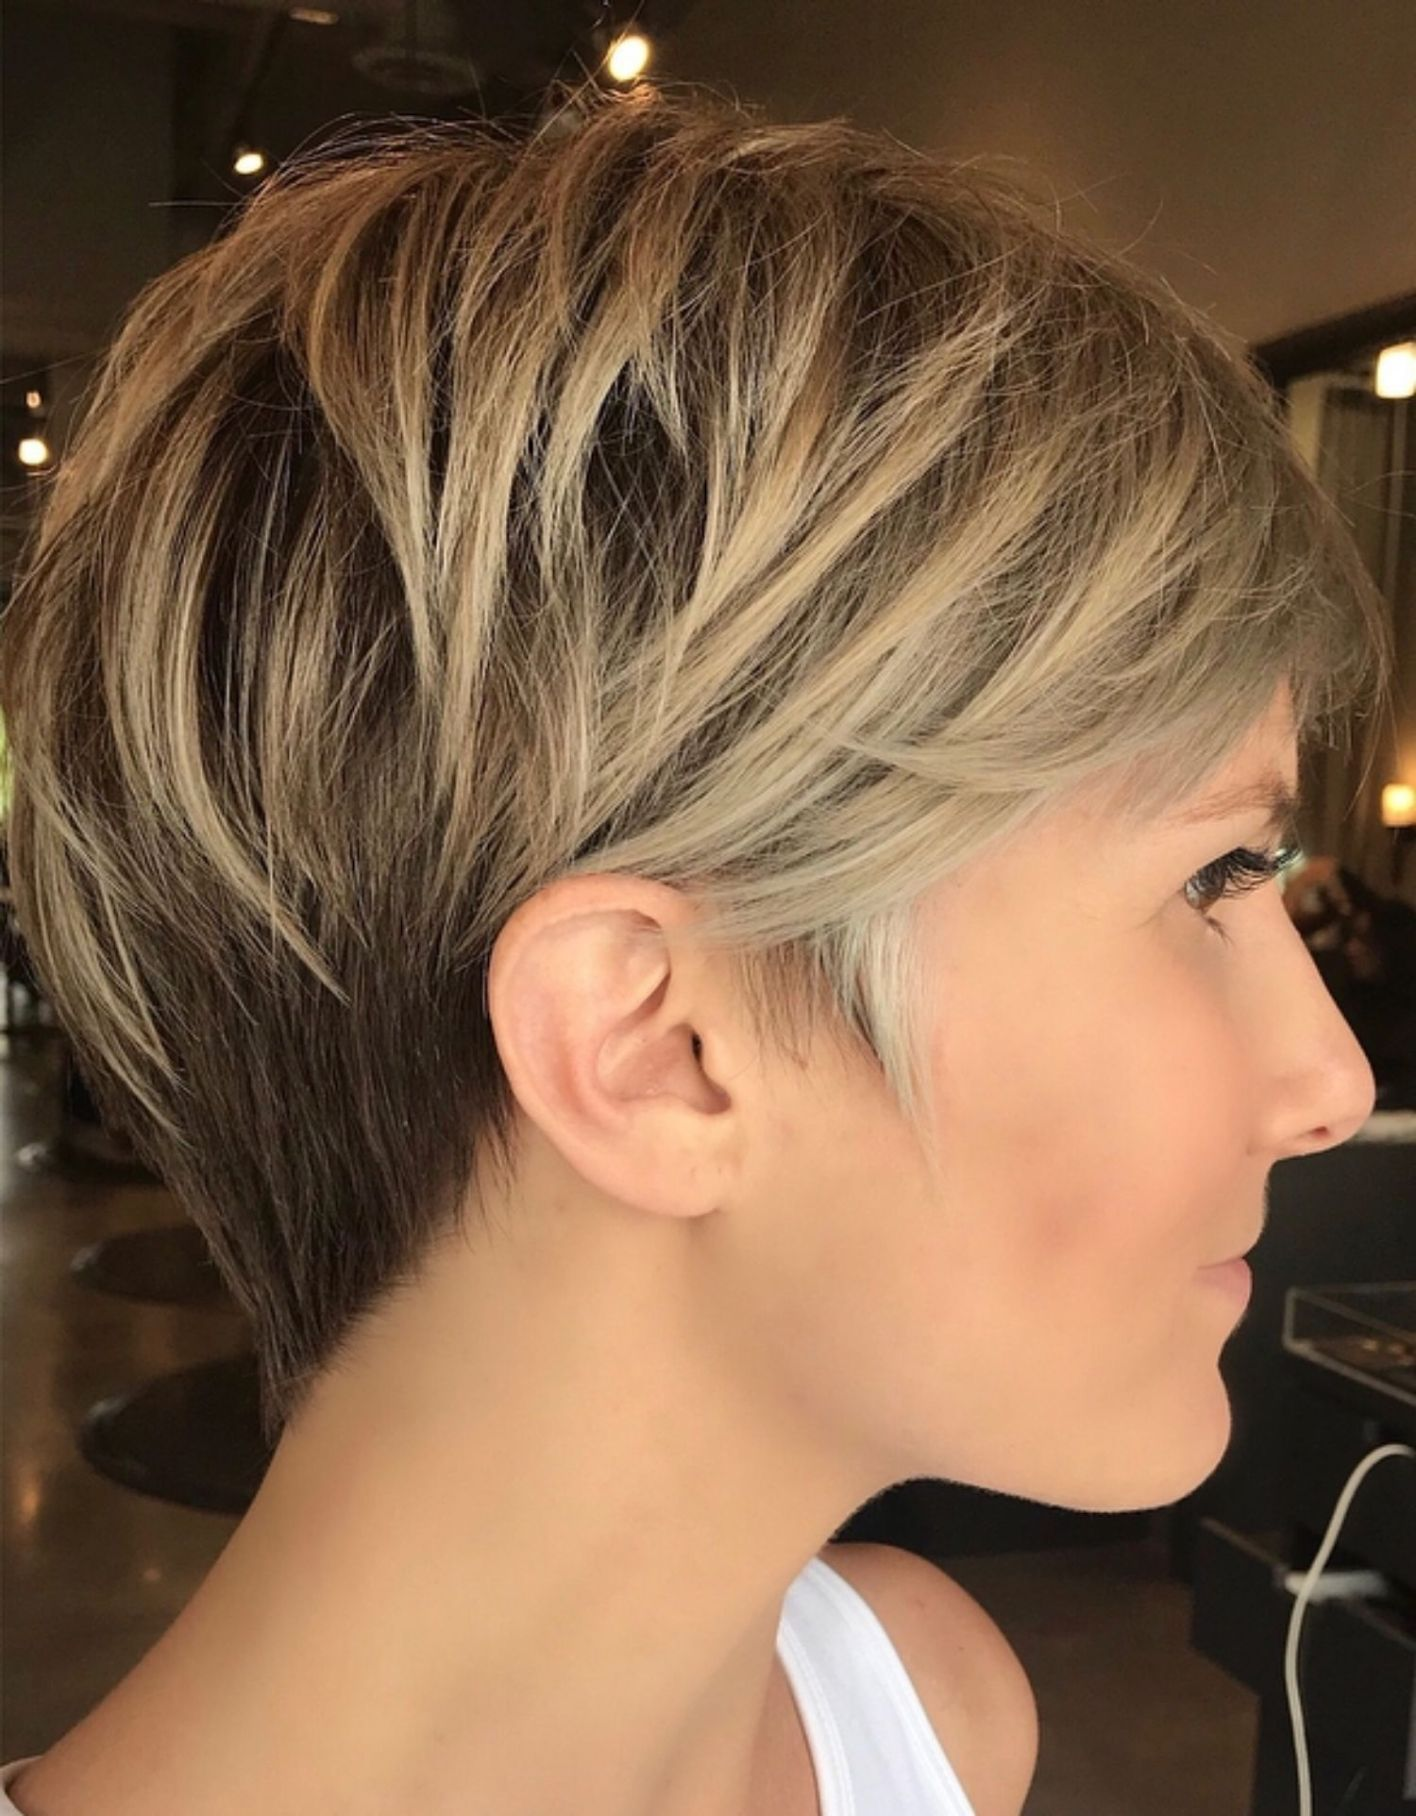 100 Mind Blowing Short Hairstyles For Fine Hair Hair Styles Short Thin Hair Long Pixie Hairstyles